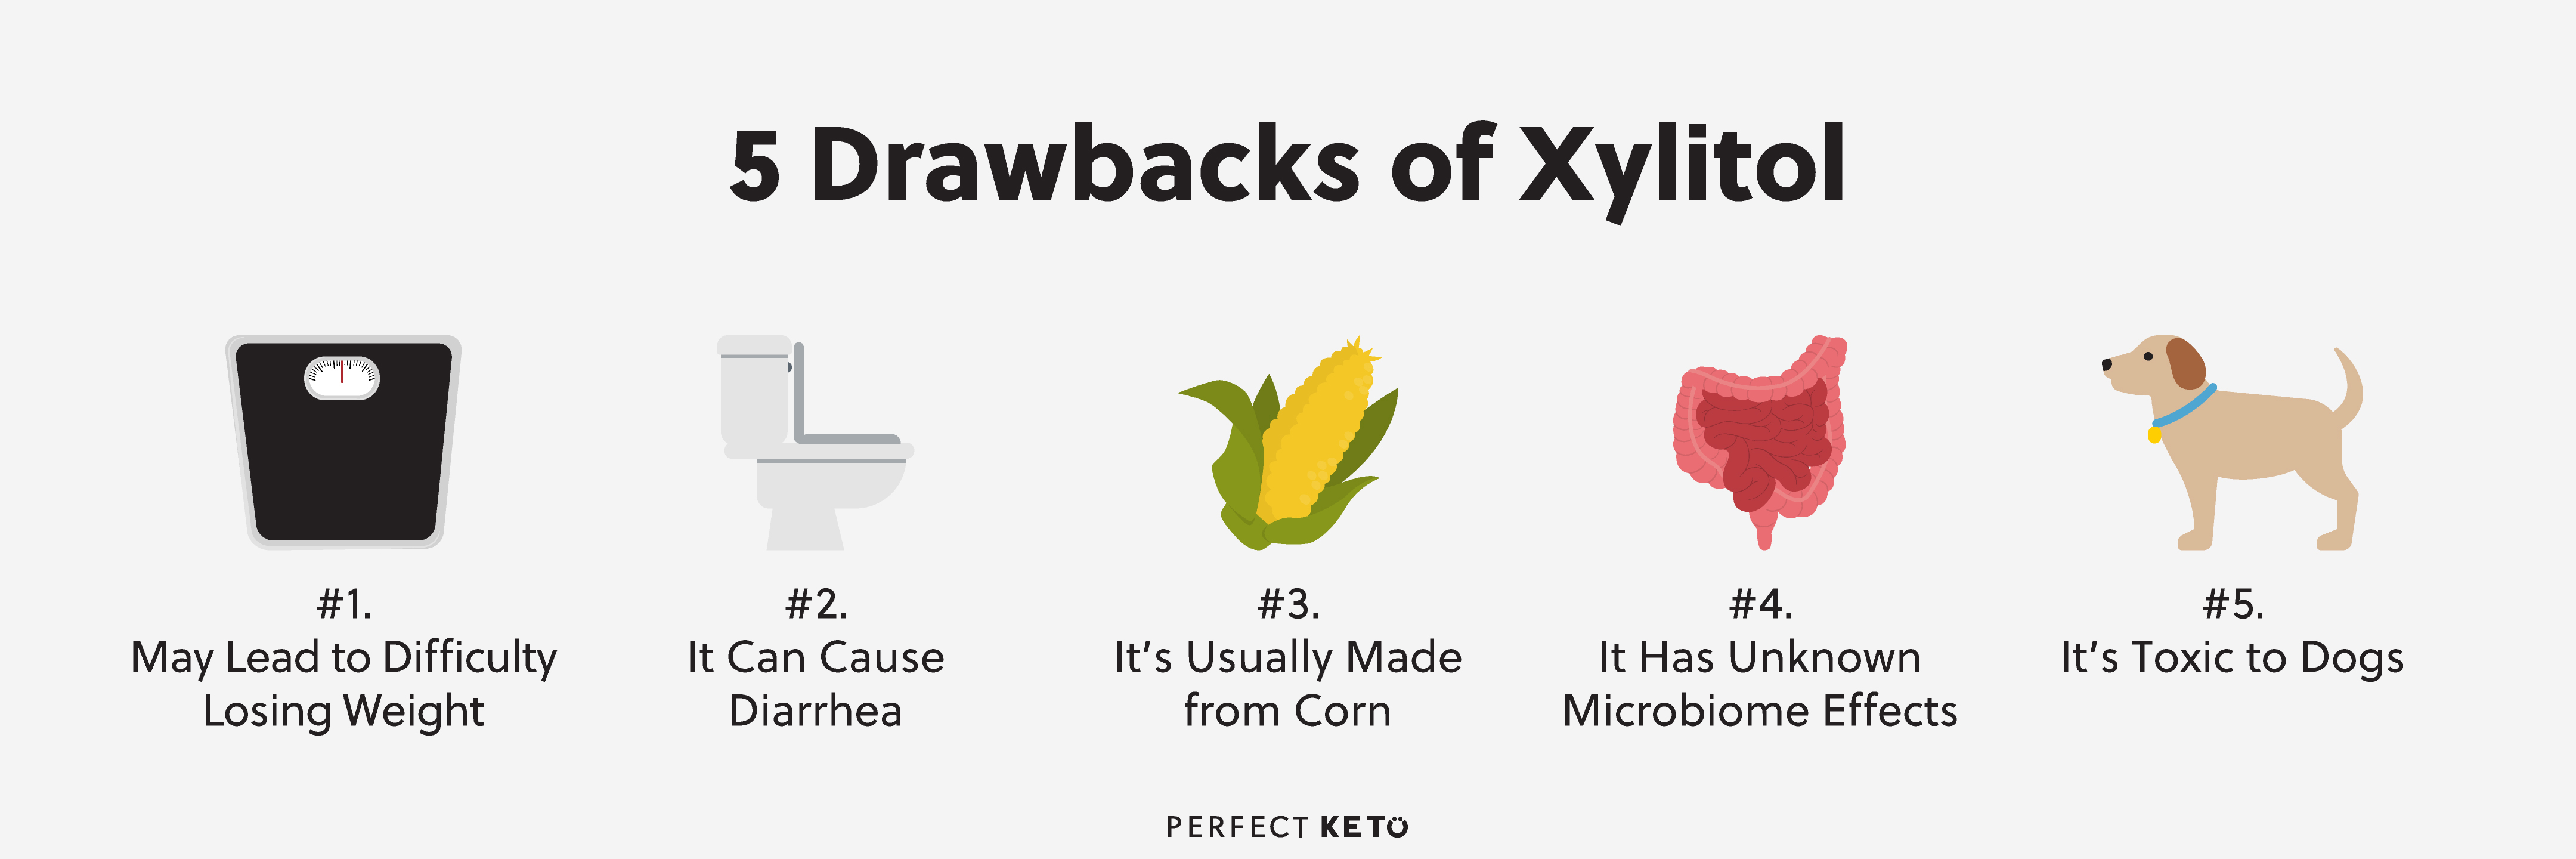 5-drawbacks-of-xylitol.jpg